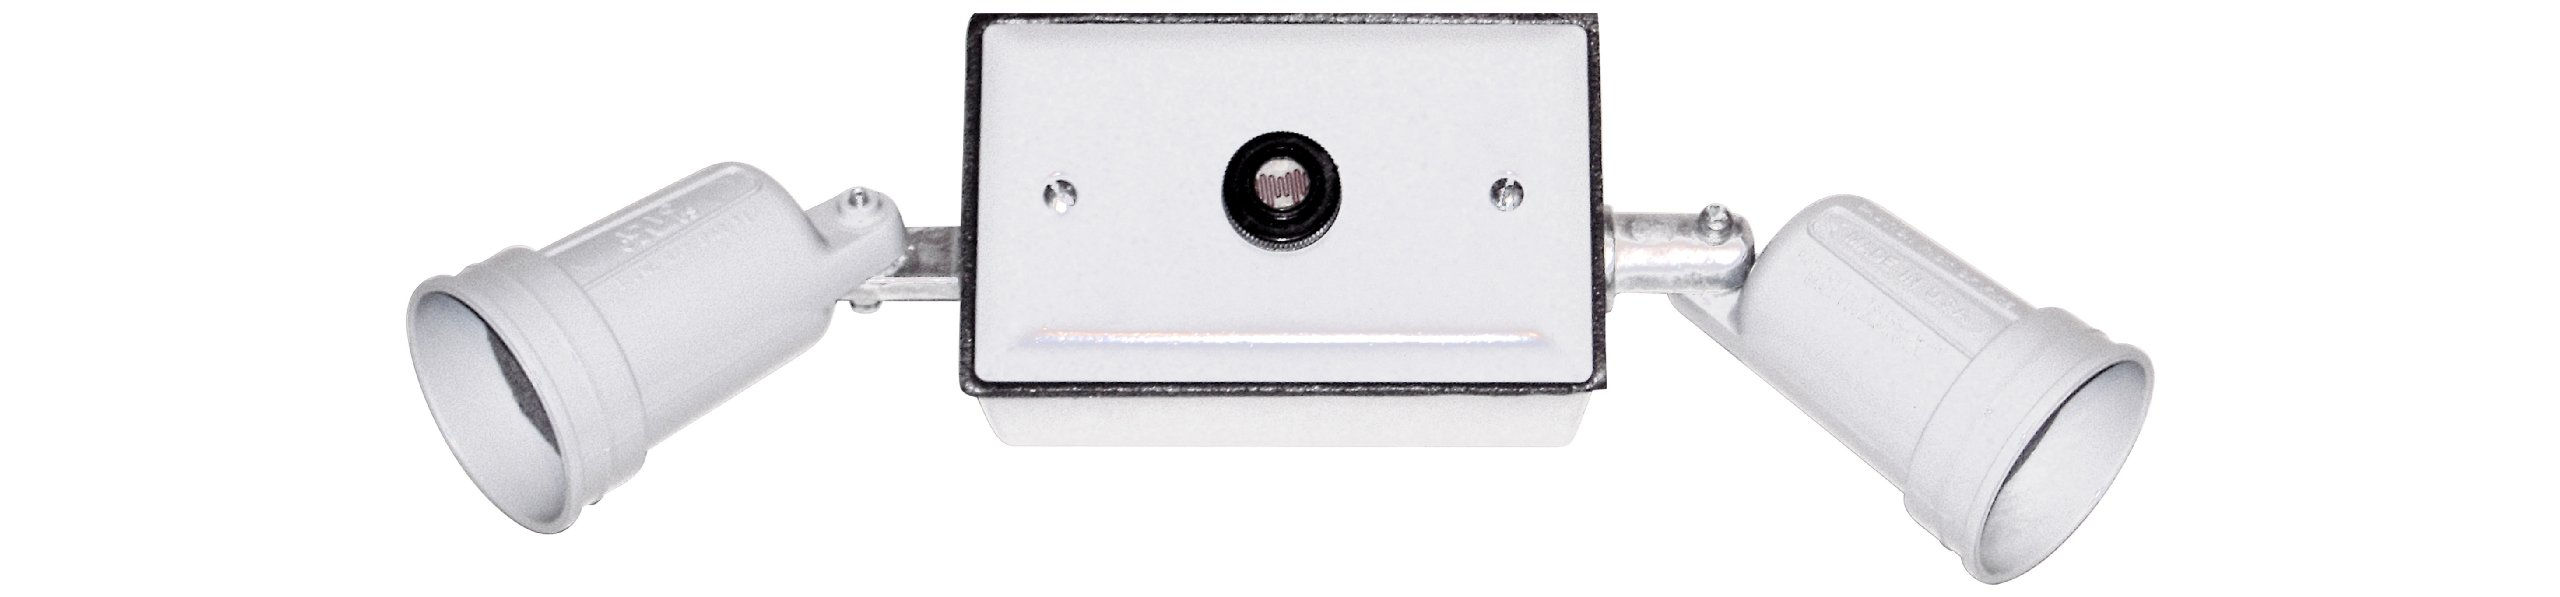 Made in USA Dusk to Dawn Weatherproof Electrical Outlet Box, Lampholder & Box Cover Kit - White